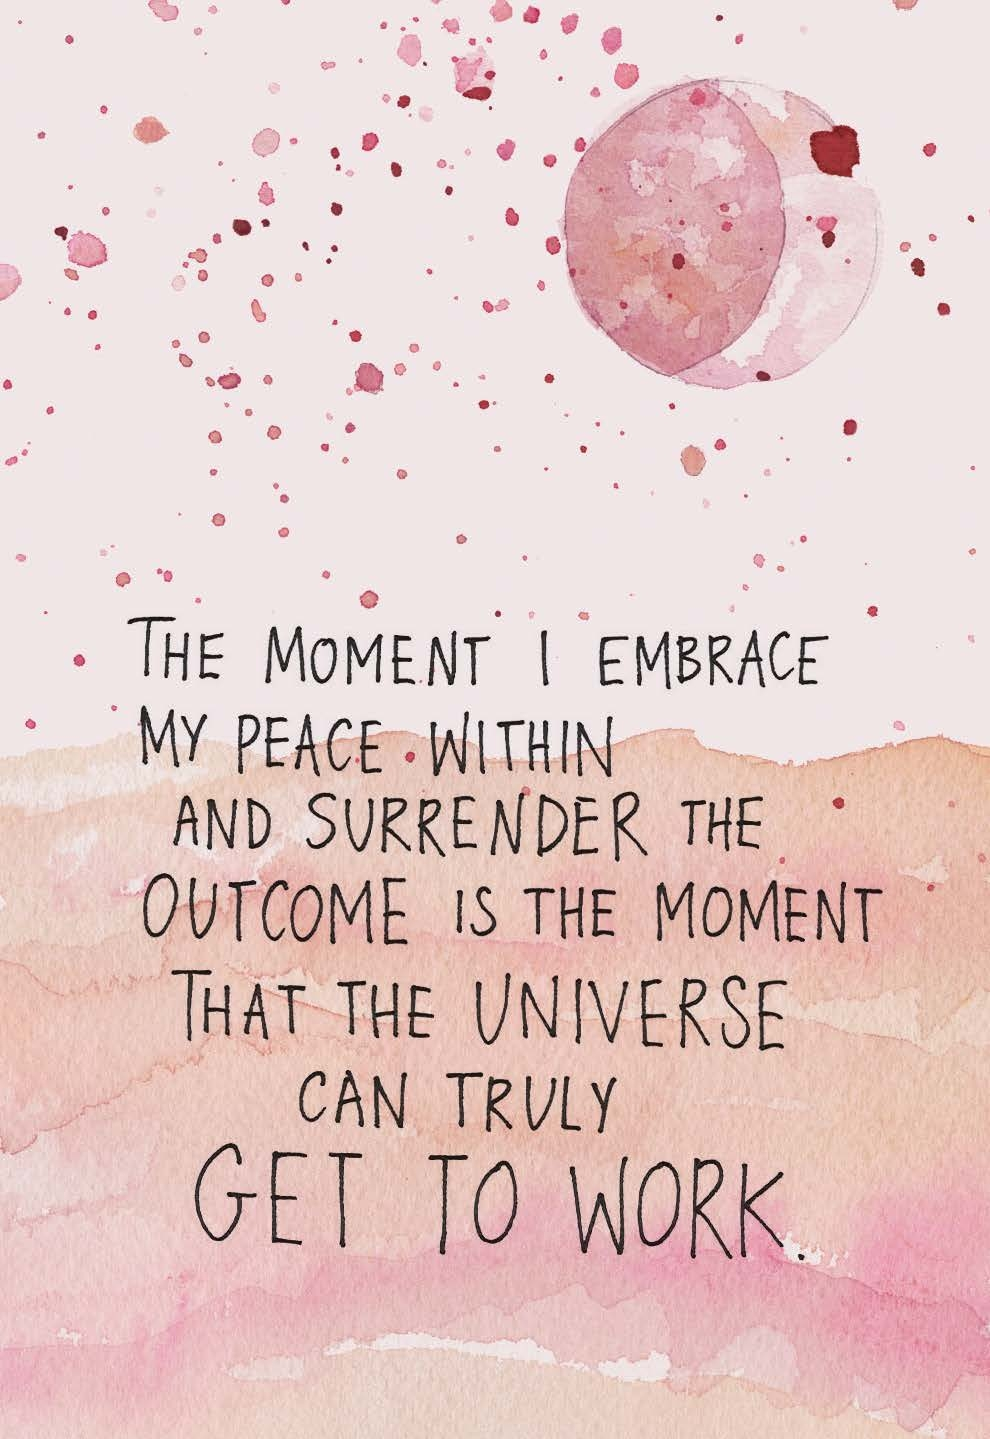 The moment I embrace my peace within and surrender the outcome is the moment that the Universe can truly get to work | Gabby Bernstein | The Universe Has Your Back card deck